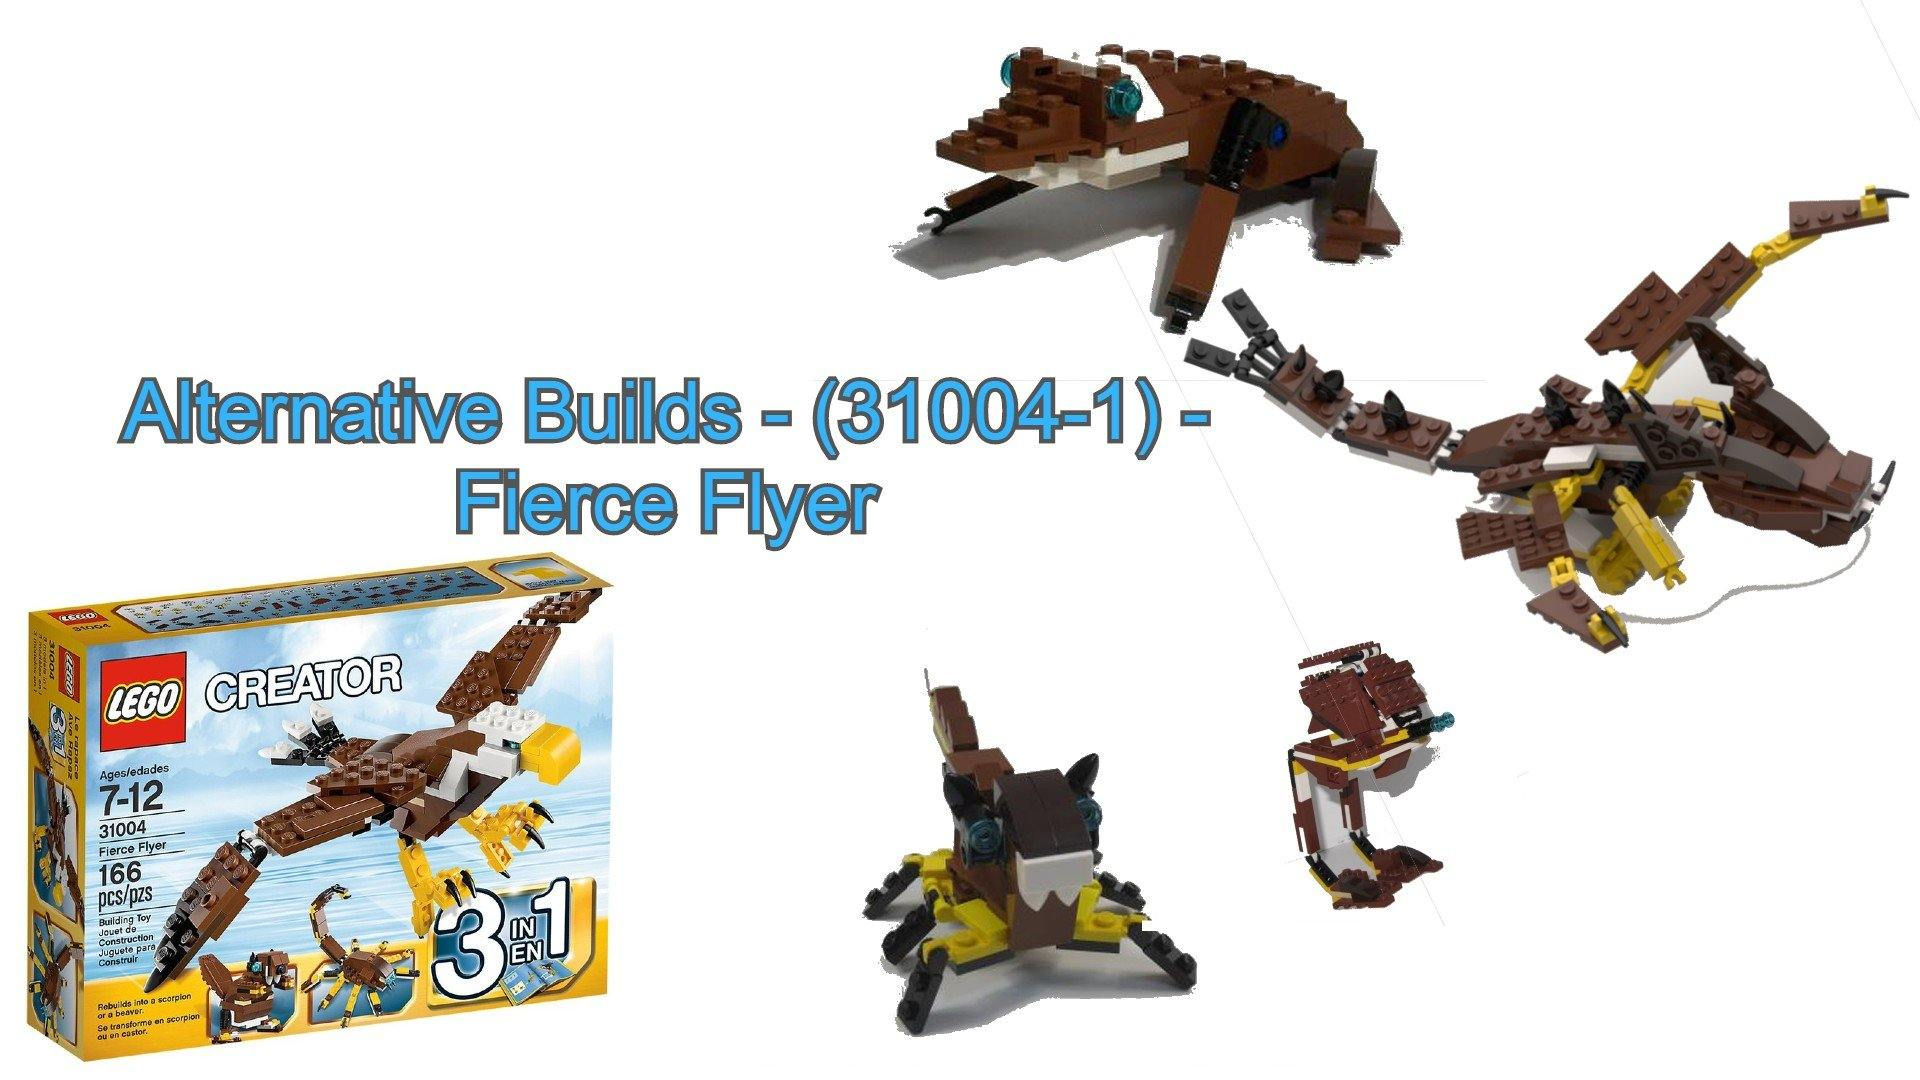 Alternative Builds - (31004-1) - Fierce Flyer